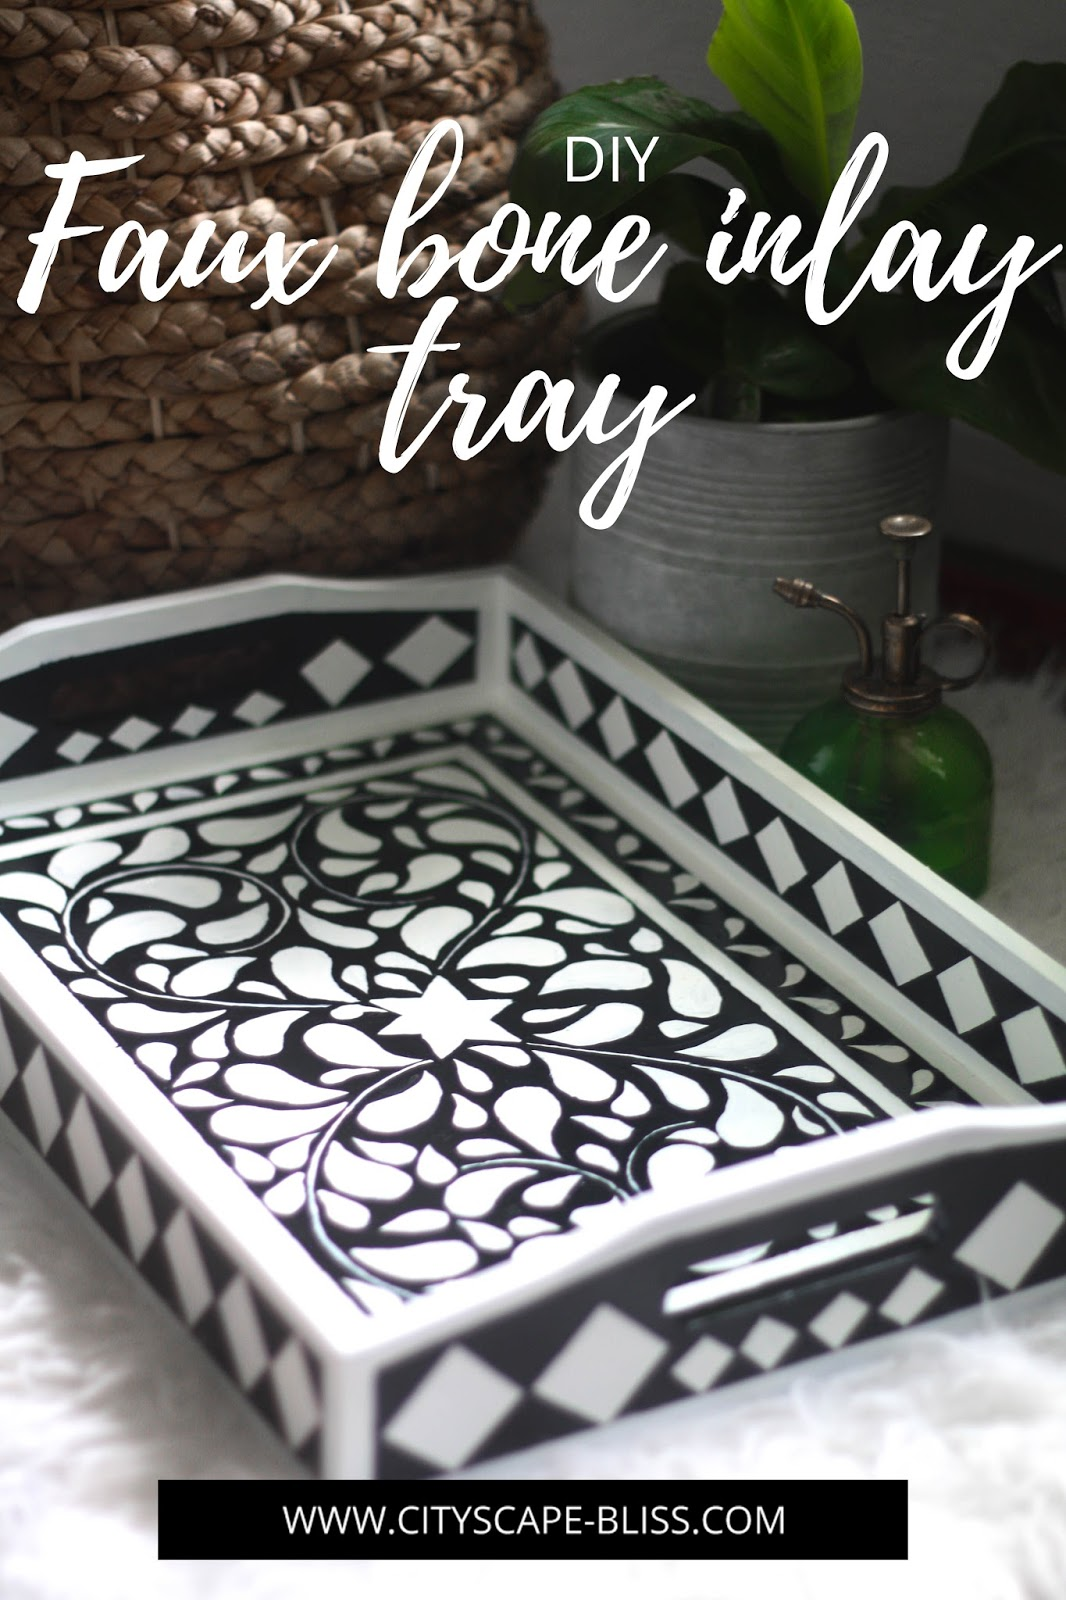 DIY beautiful faux bone inlay tray